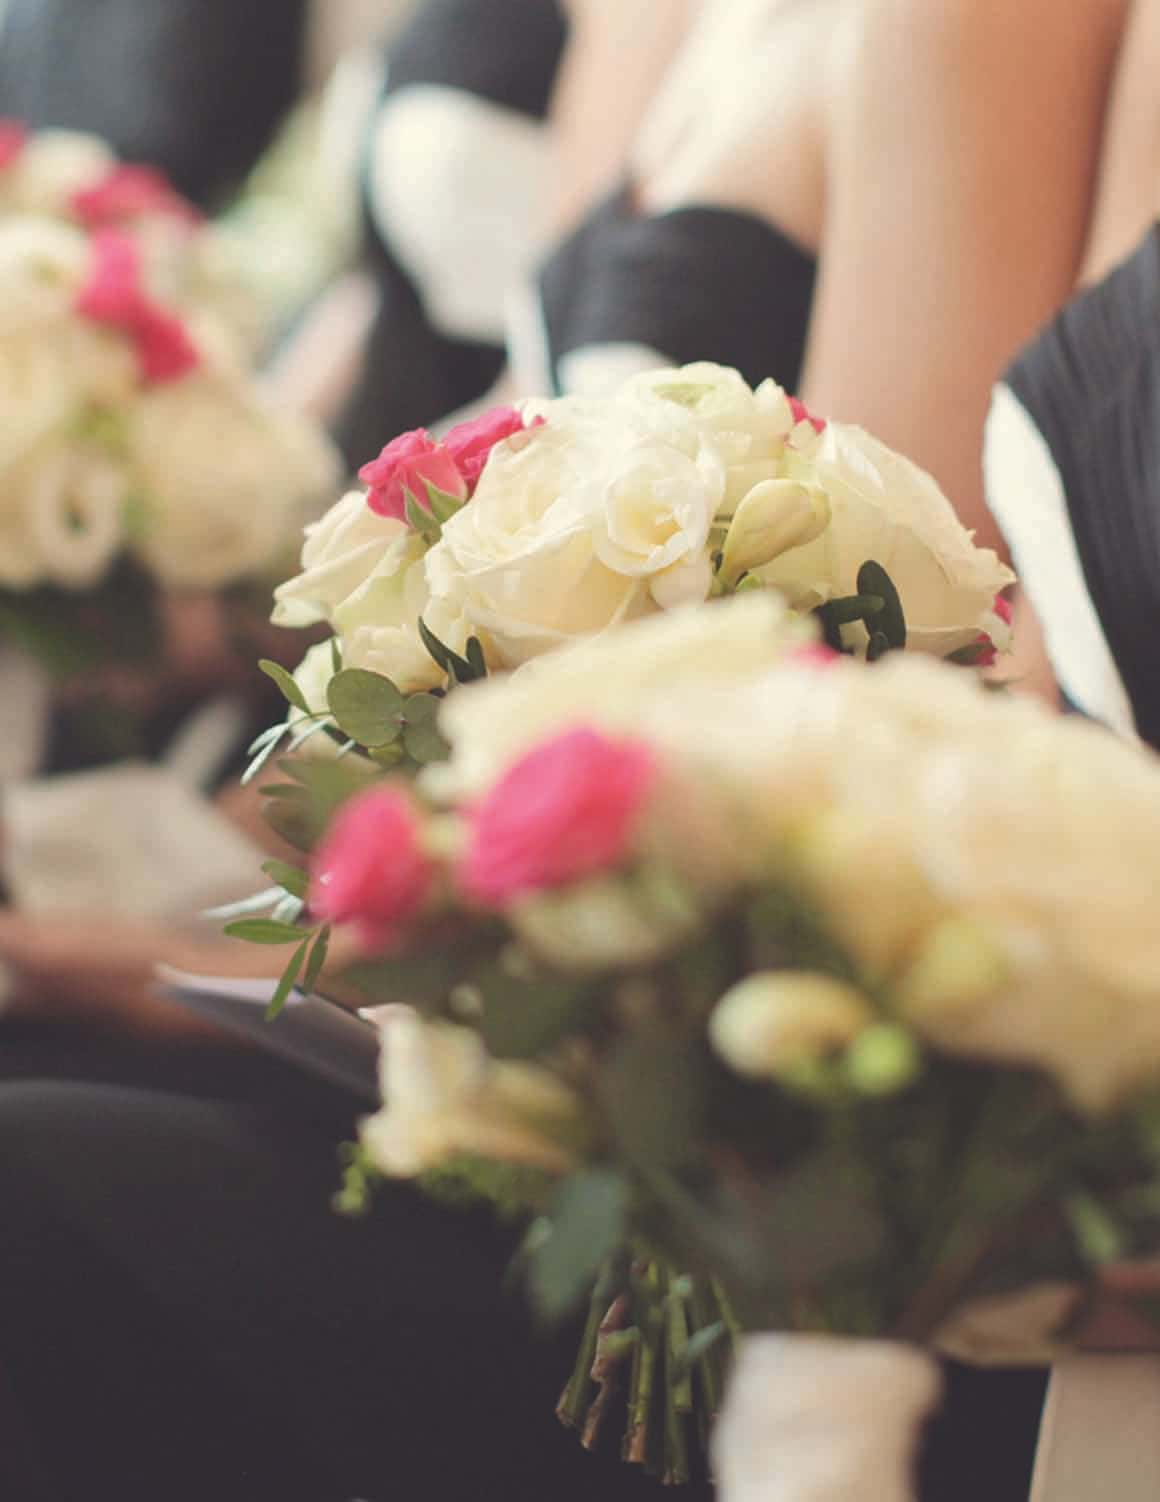 Weddings at The Greenway Hotel and Spa